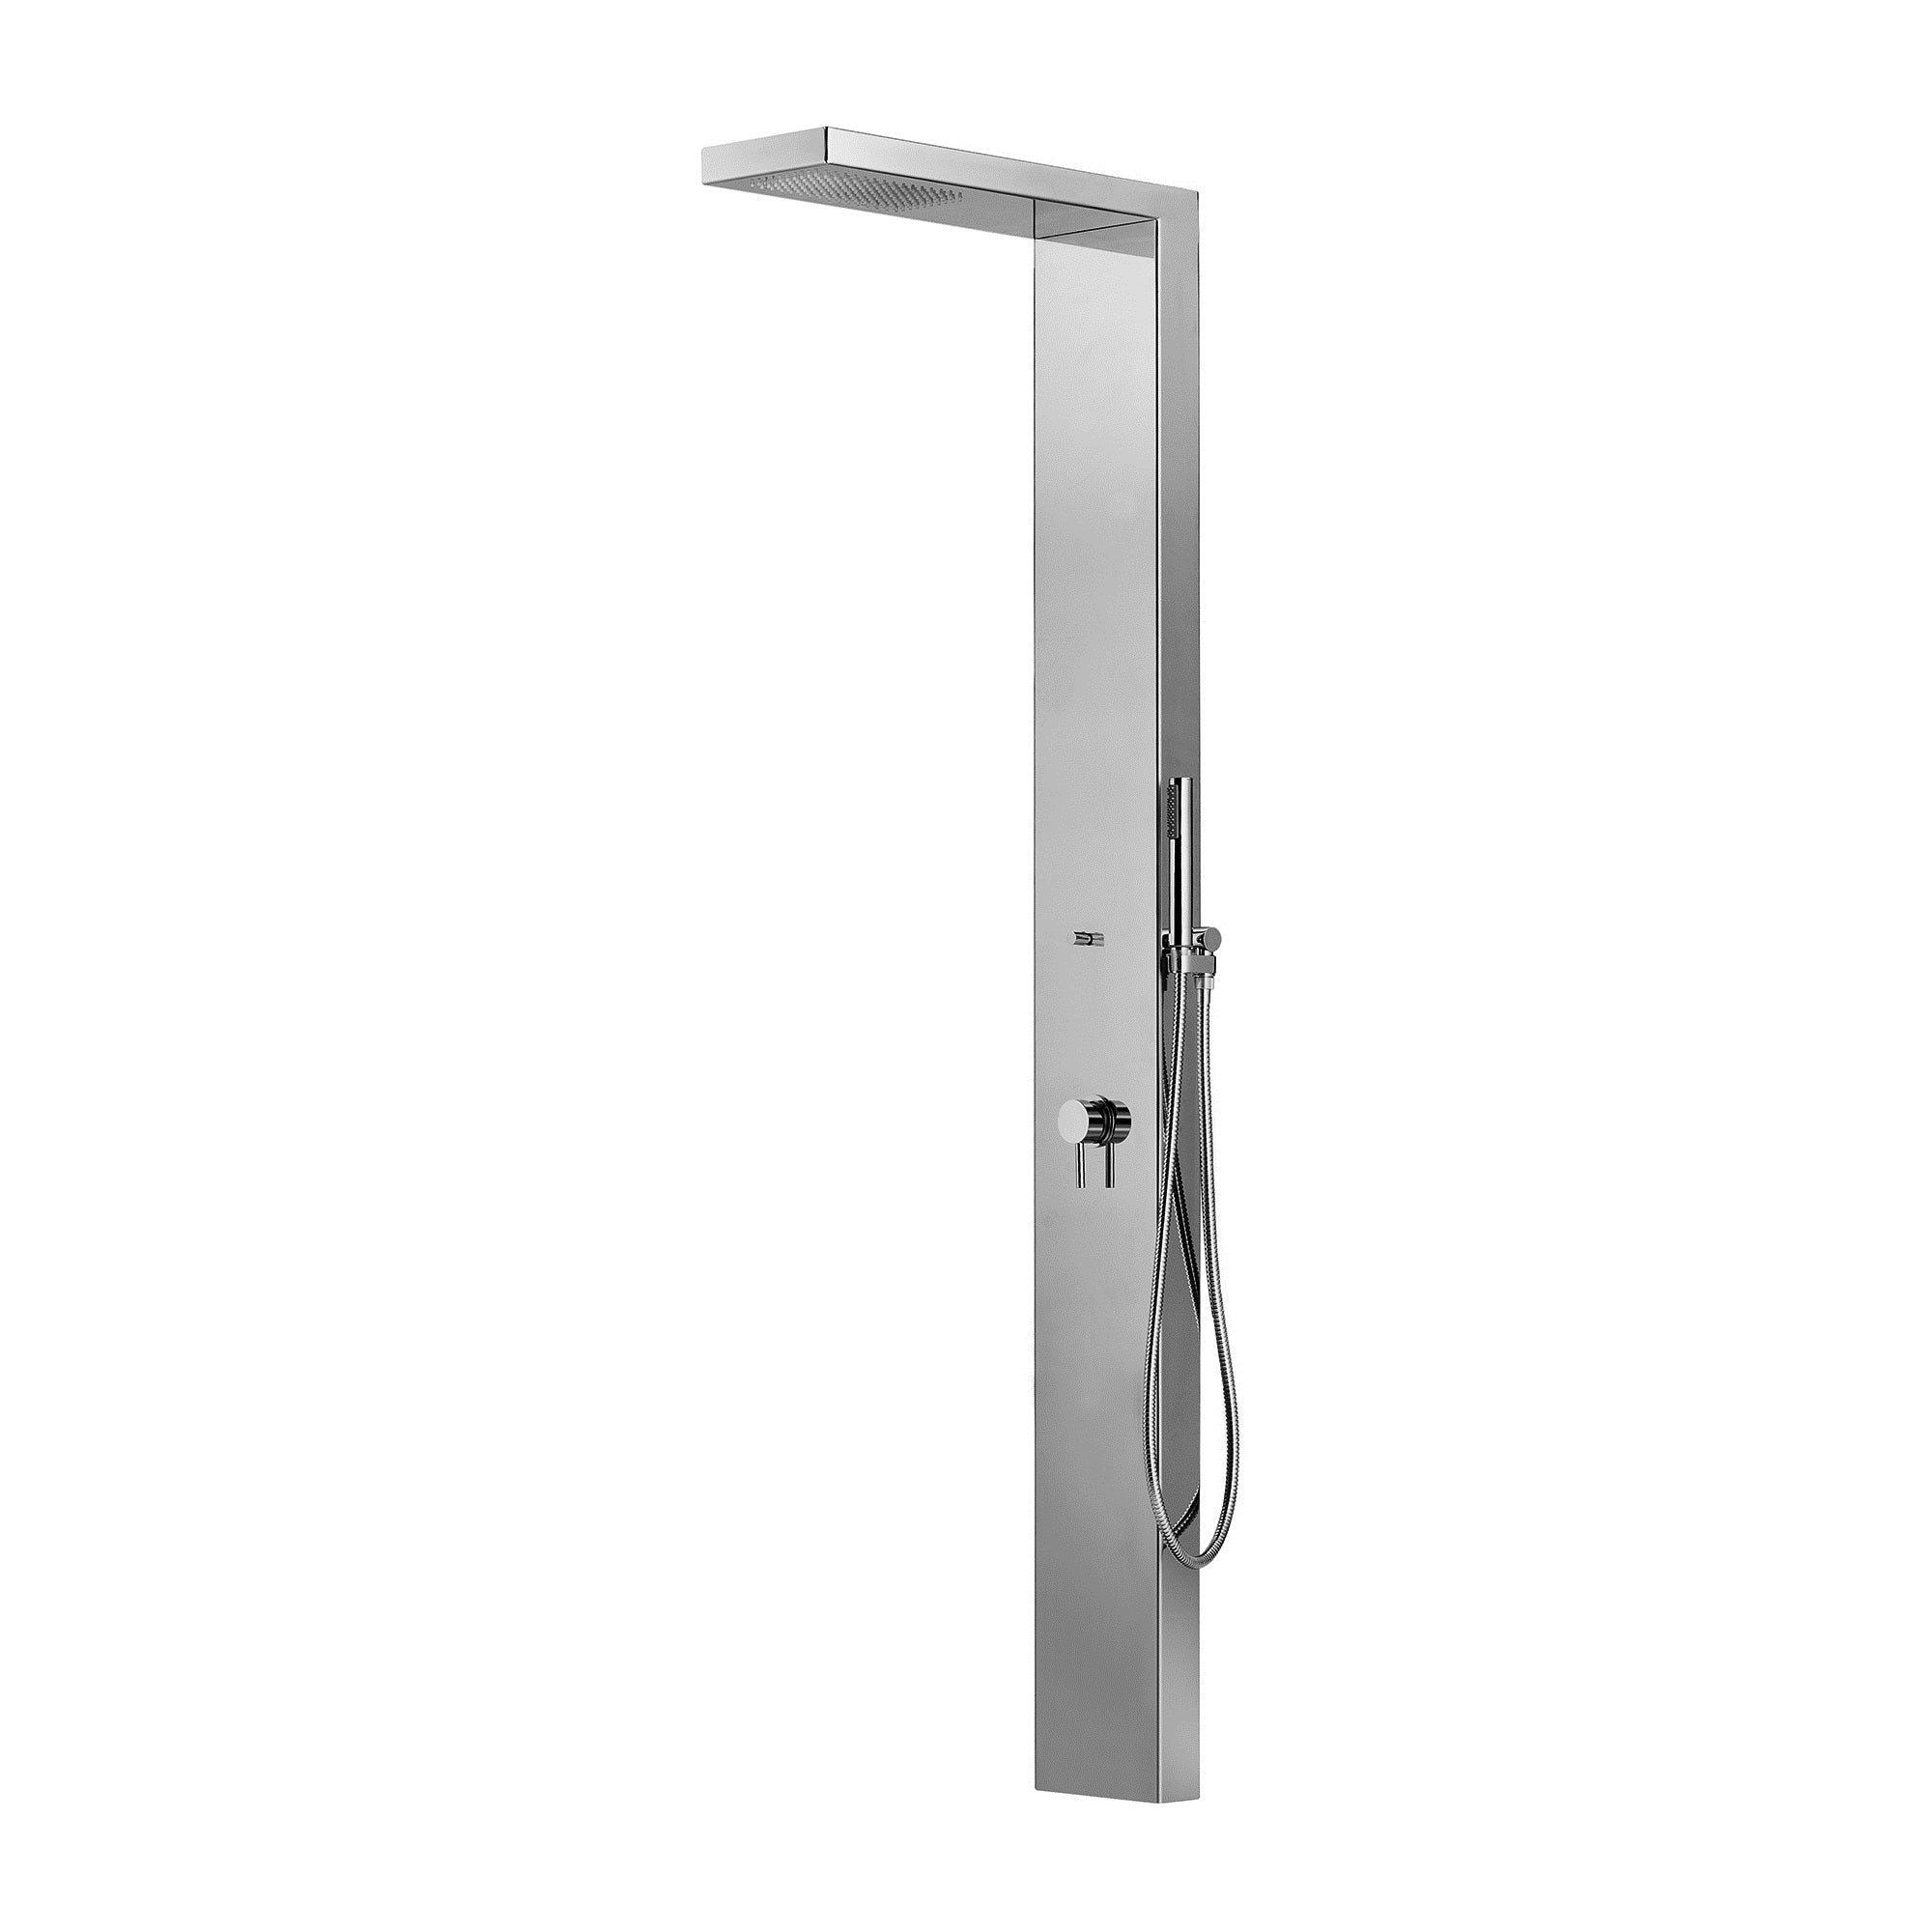 Outdoor Shower Co Concealed Shower Head - Hot & Cold - Hand Spray ...